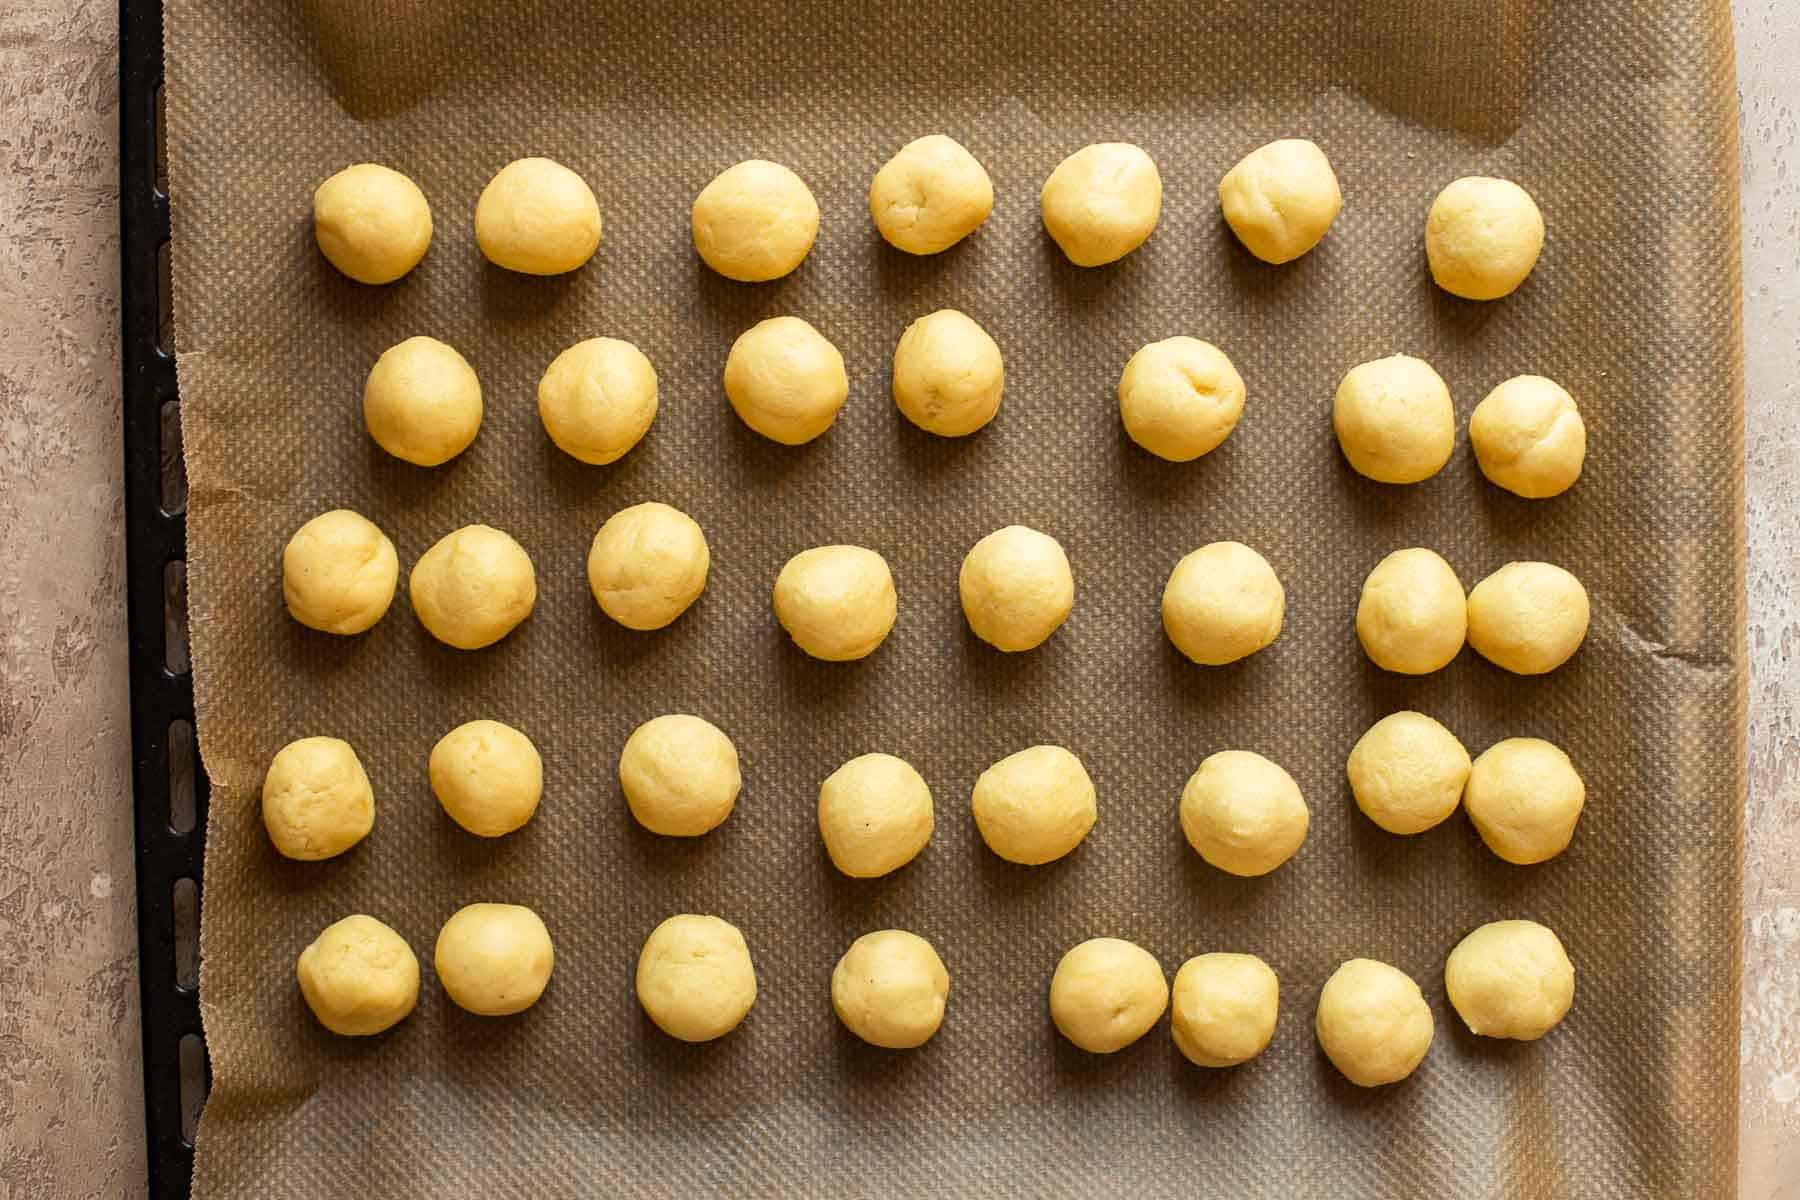 thumbprint cookie dough rolled into balls